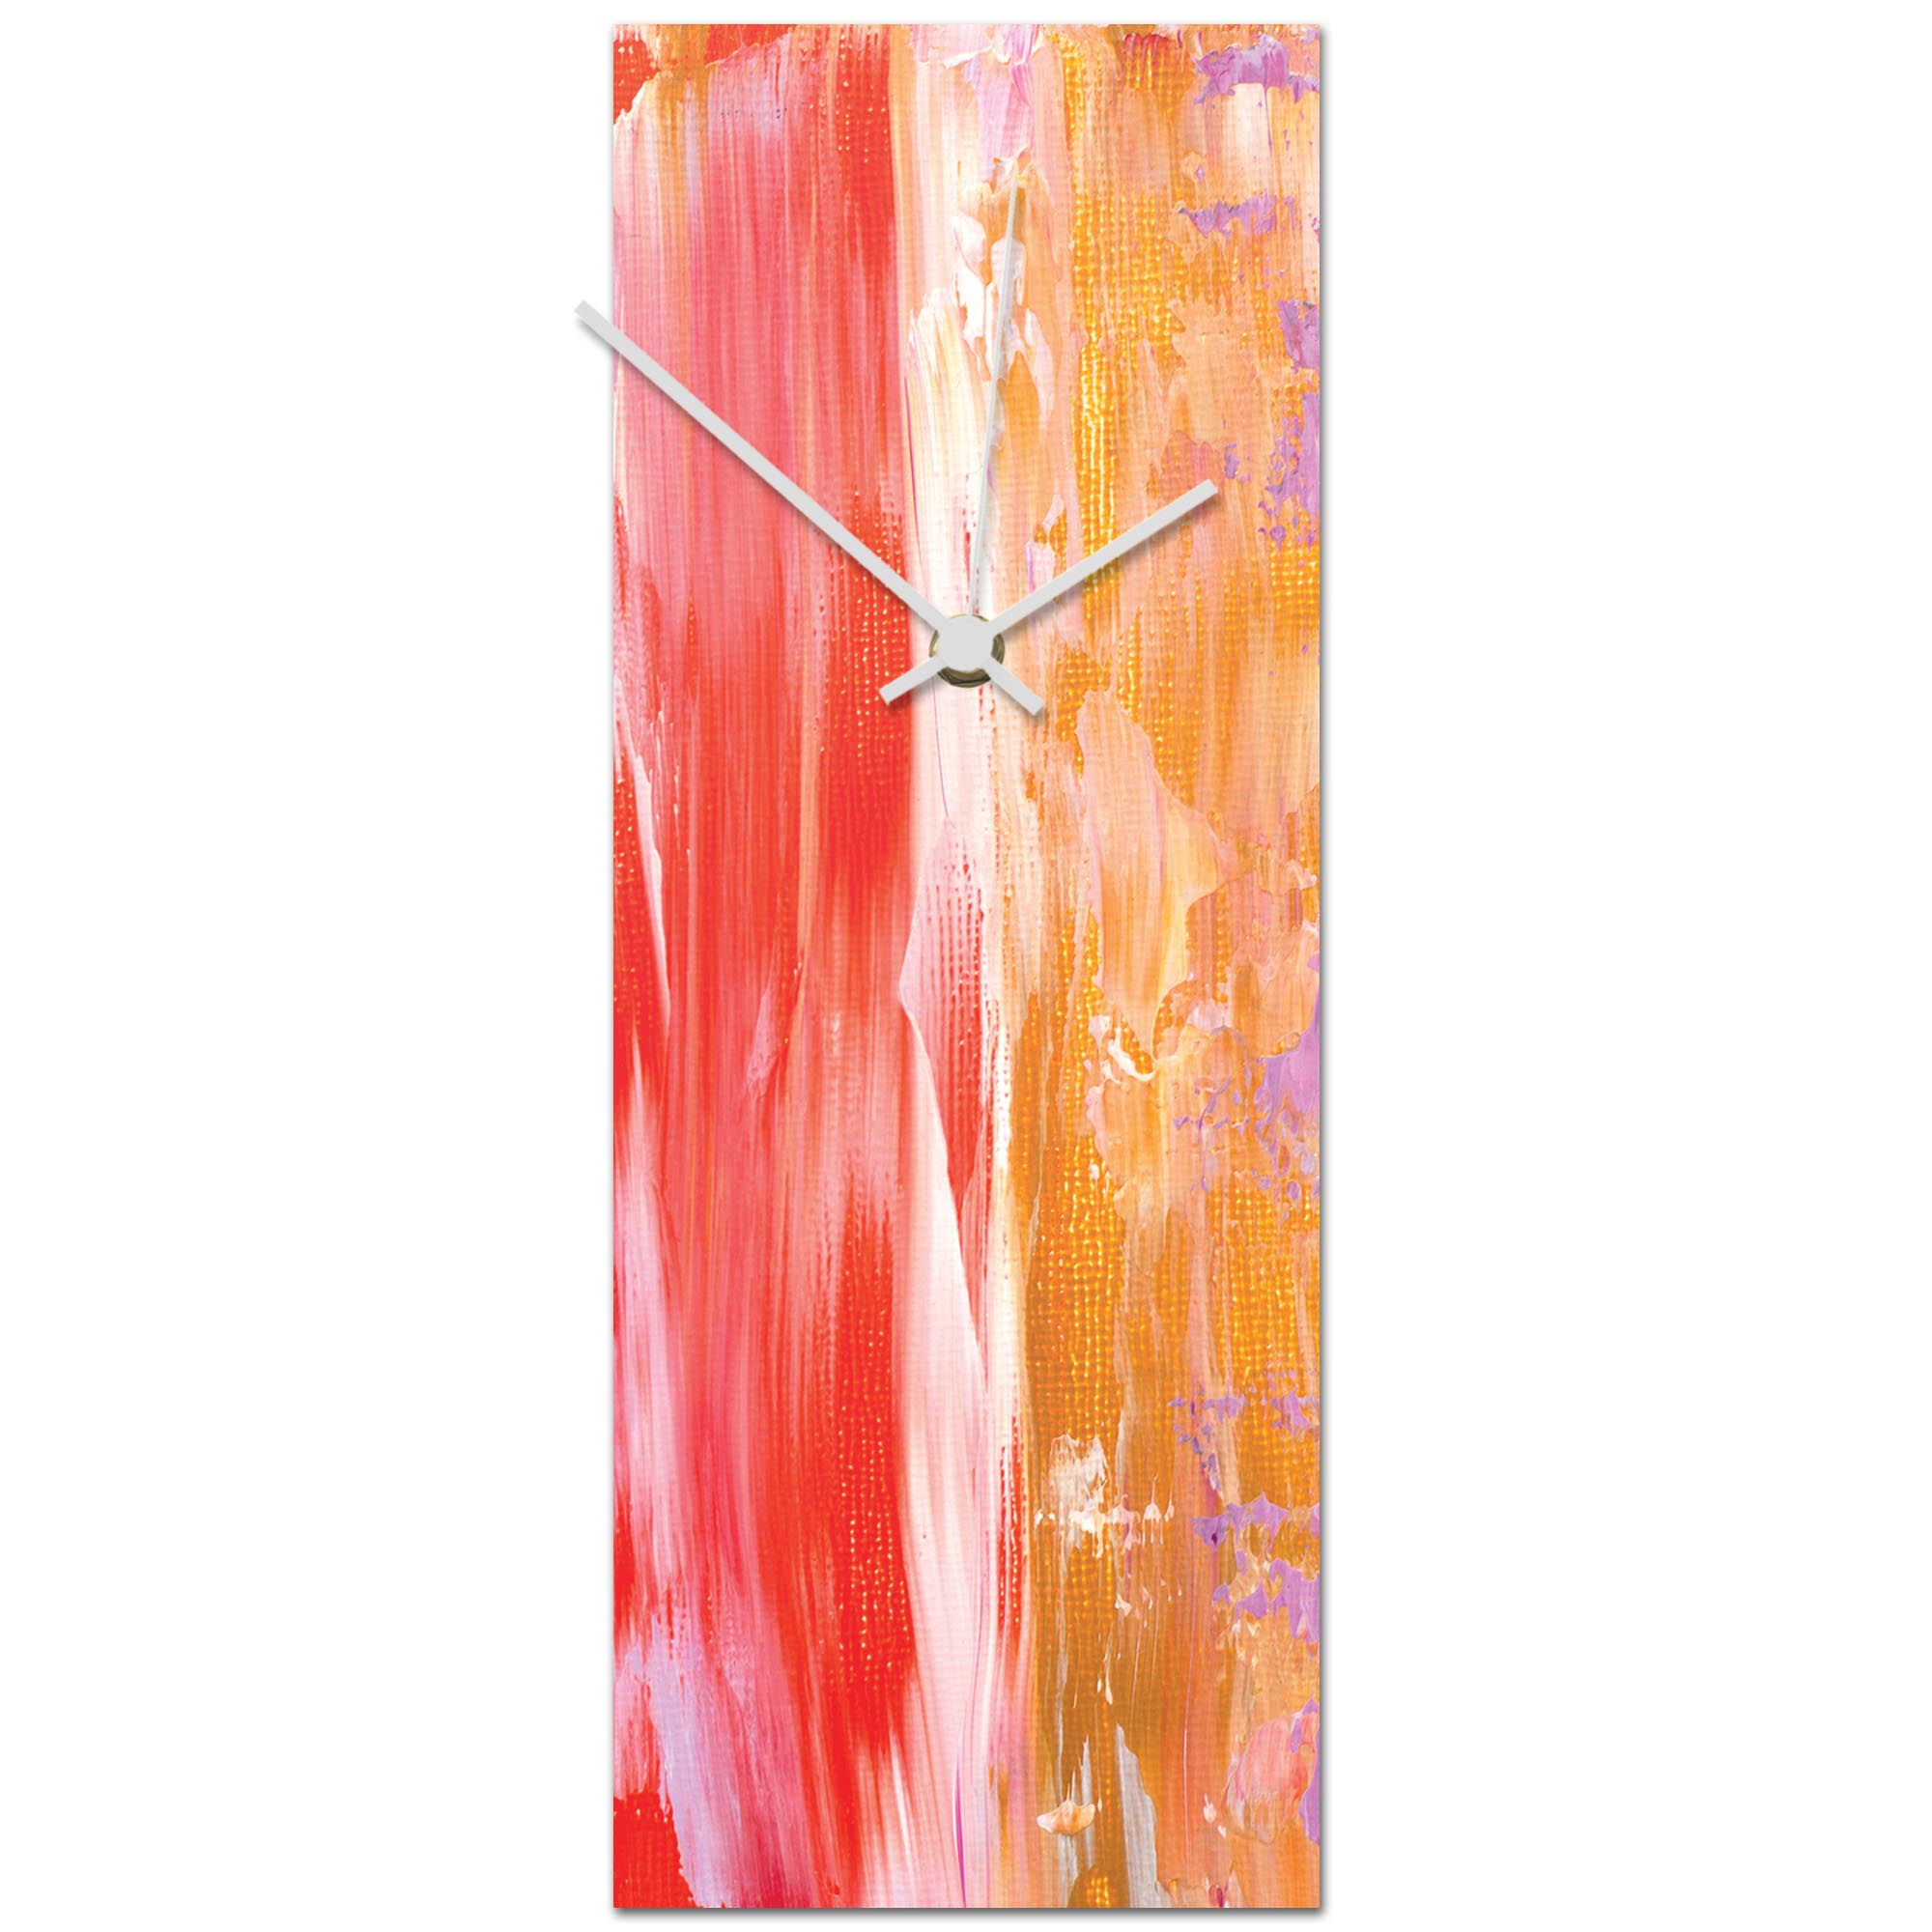 Urban Warmth v5 Clock 6x16in. Metal